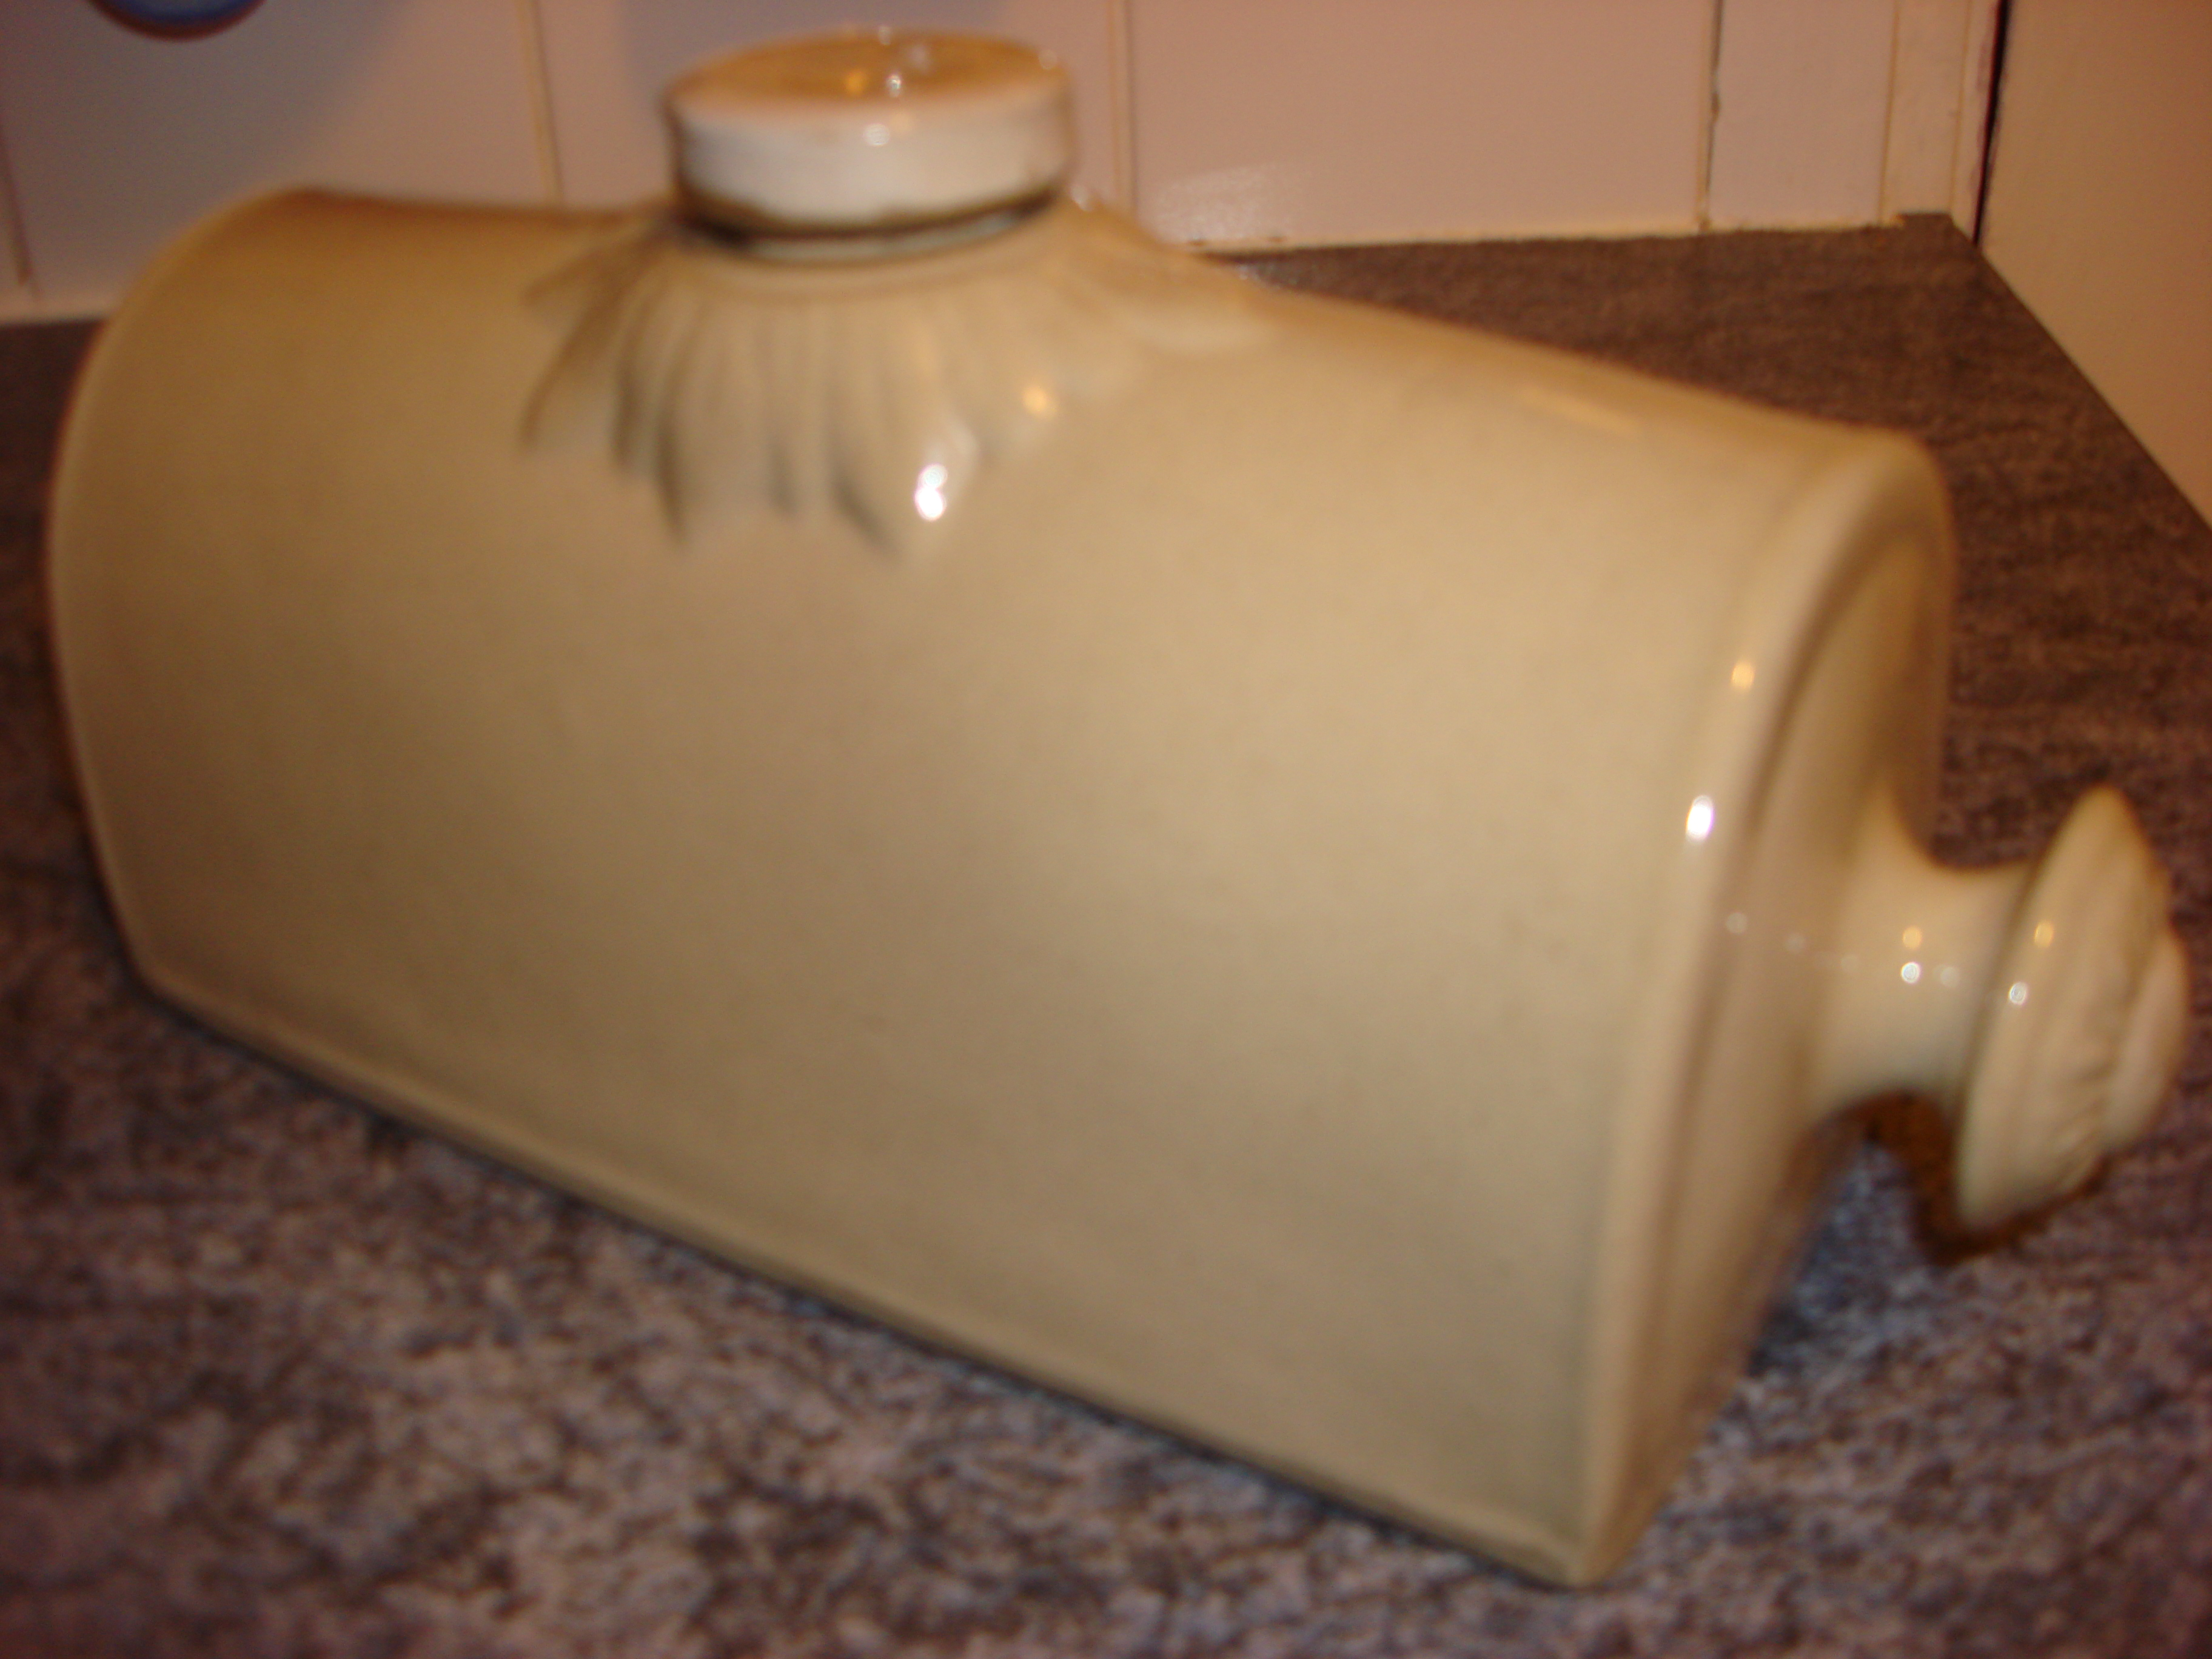 A ceramic hot water bottle with a screw top lid at the top